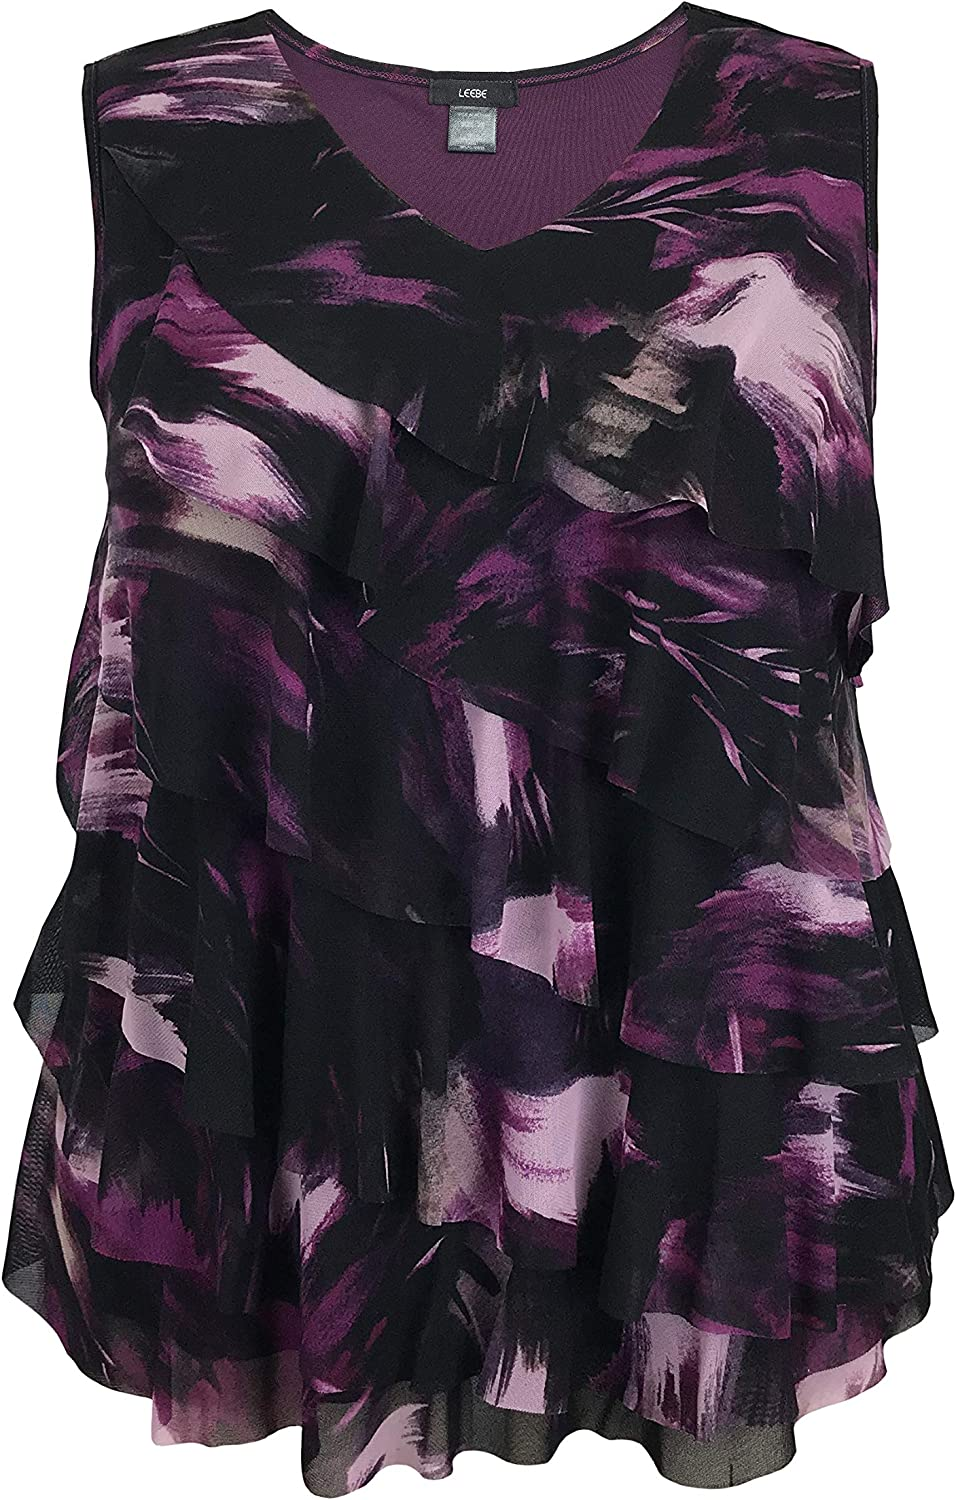 LEEBE Women and Plus Size Printed Mesh Ruffle Top (Small-5X)